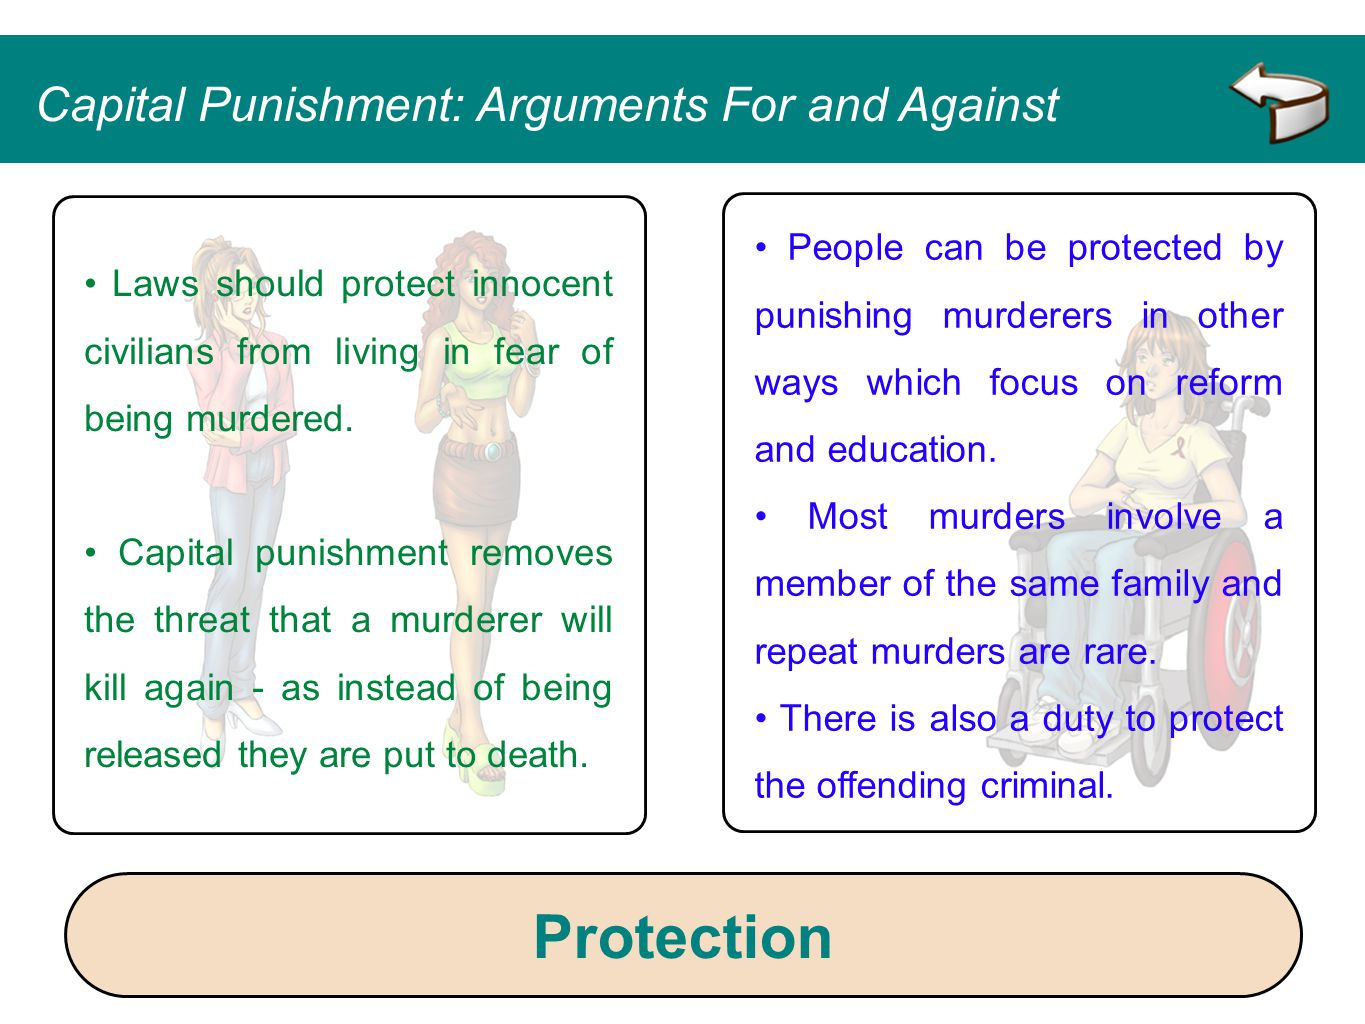 People can be protected by punishing murderers in other ways which focus on reform and education. Most murders involve a member of the same family and